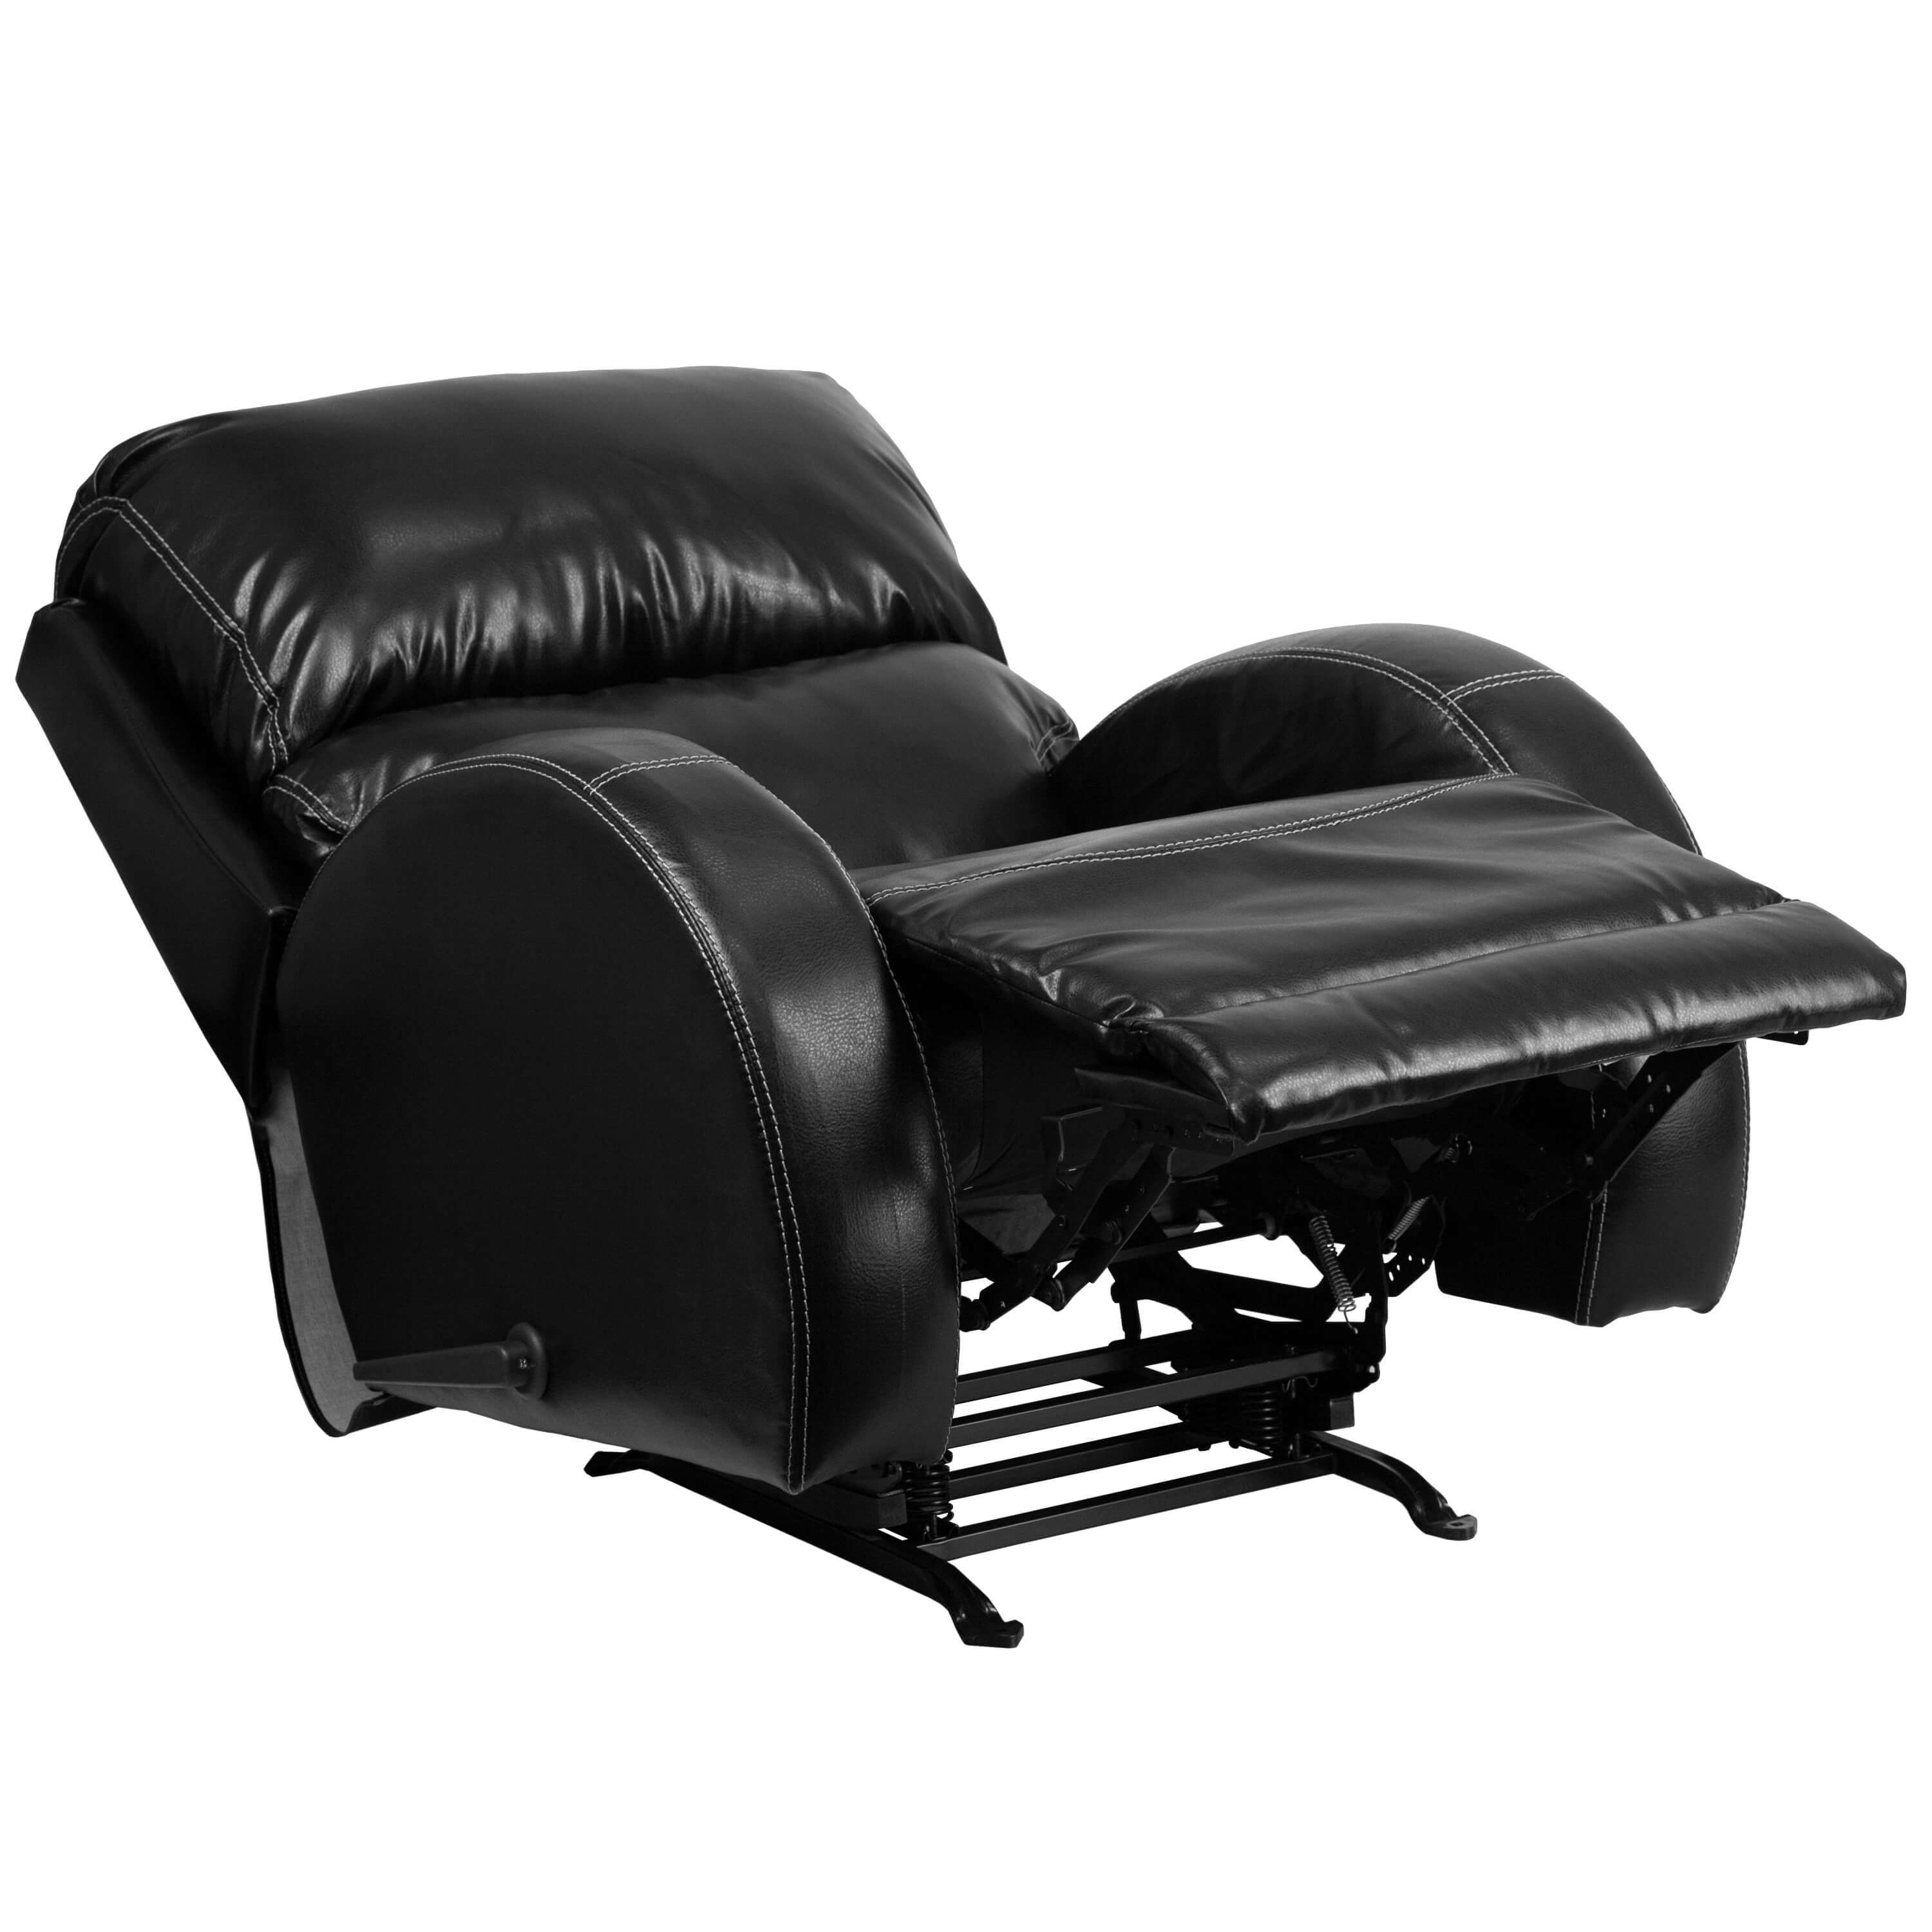 Leather rocking recliner reclined view